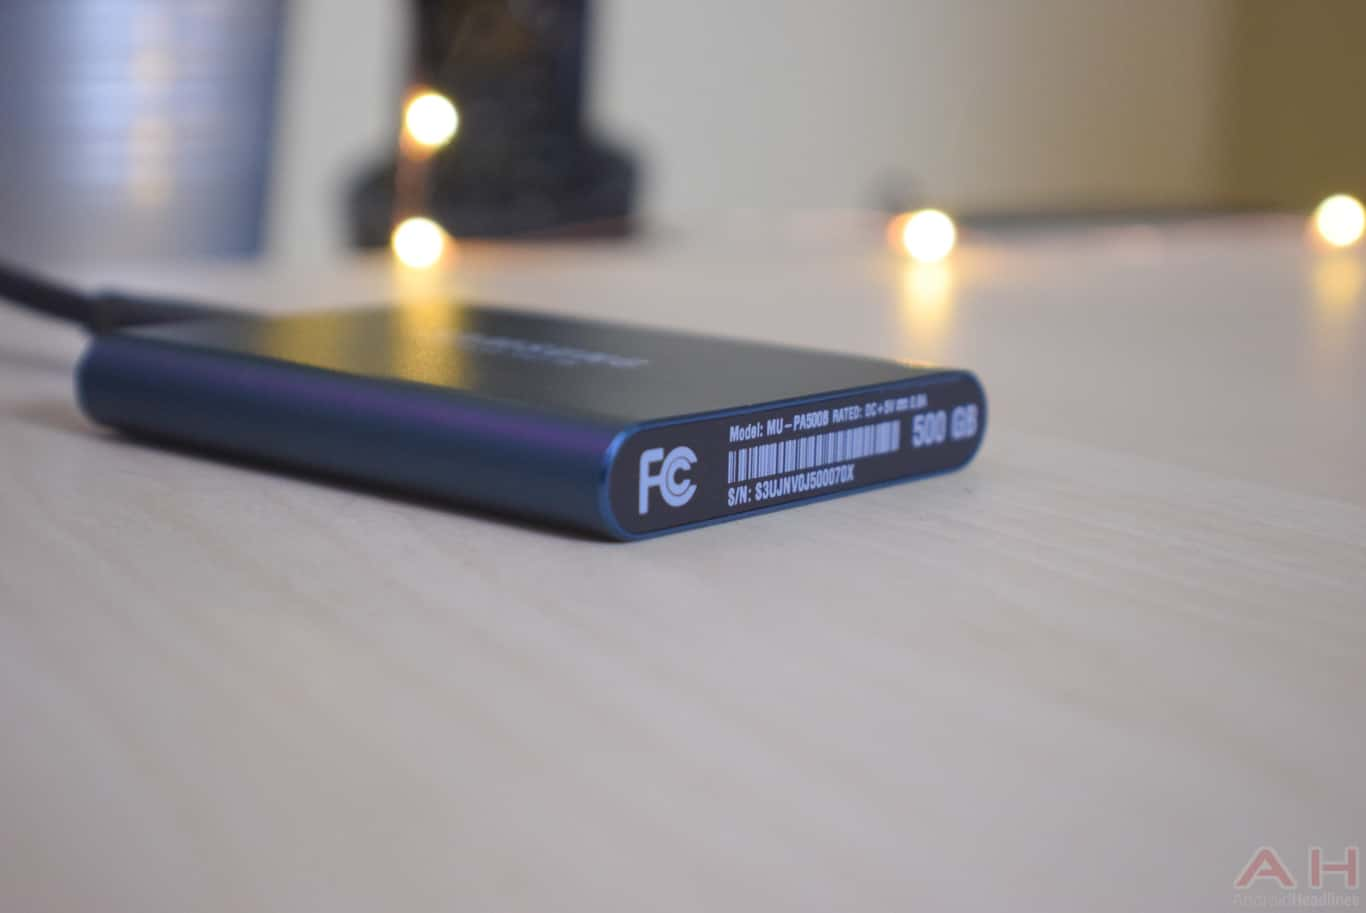 Samsung T5 SSD Review AM AH 0041